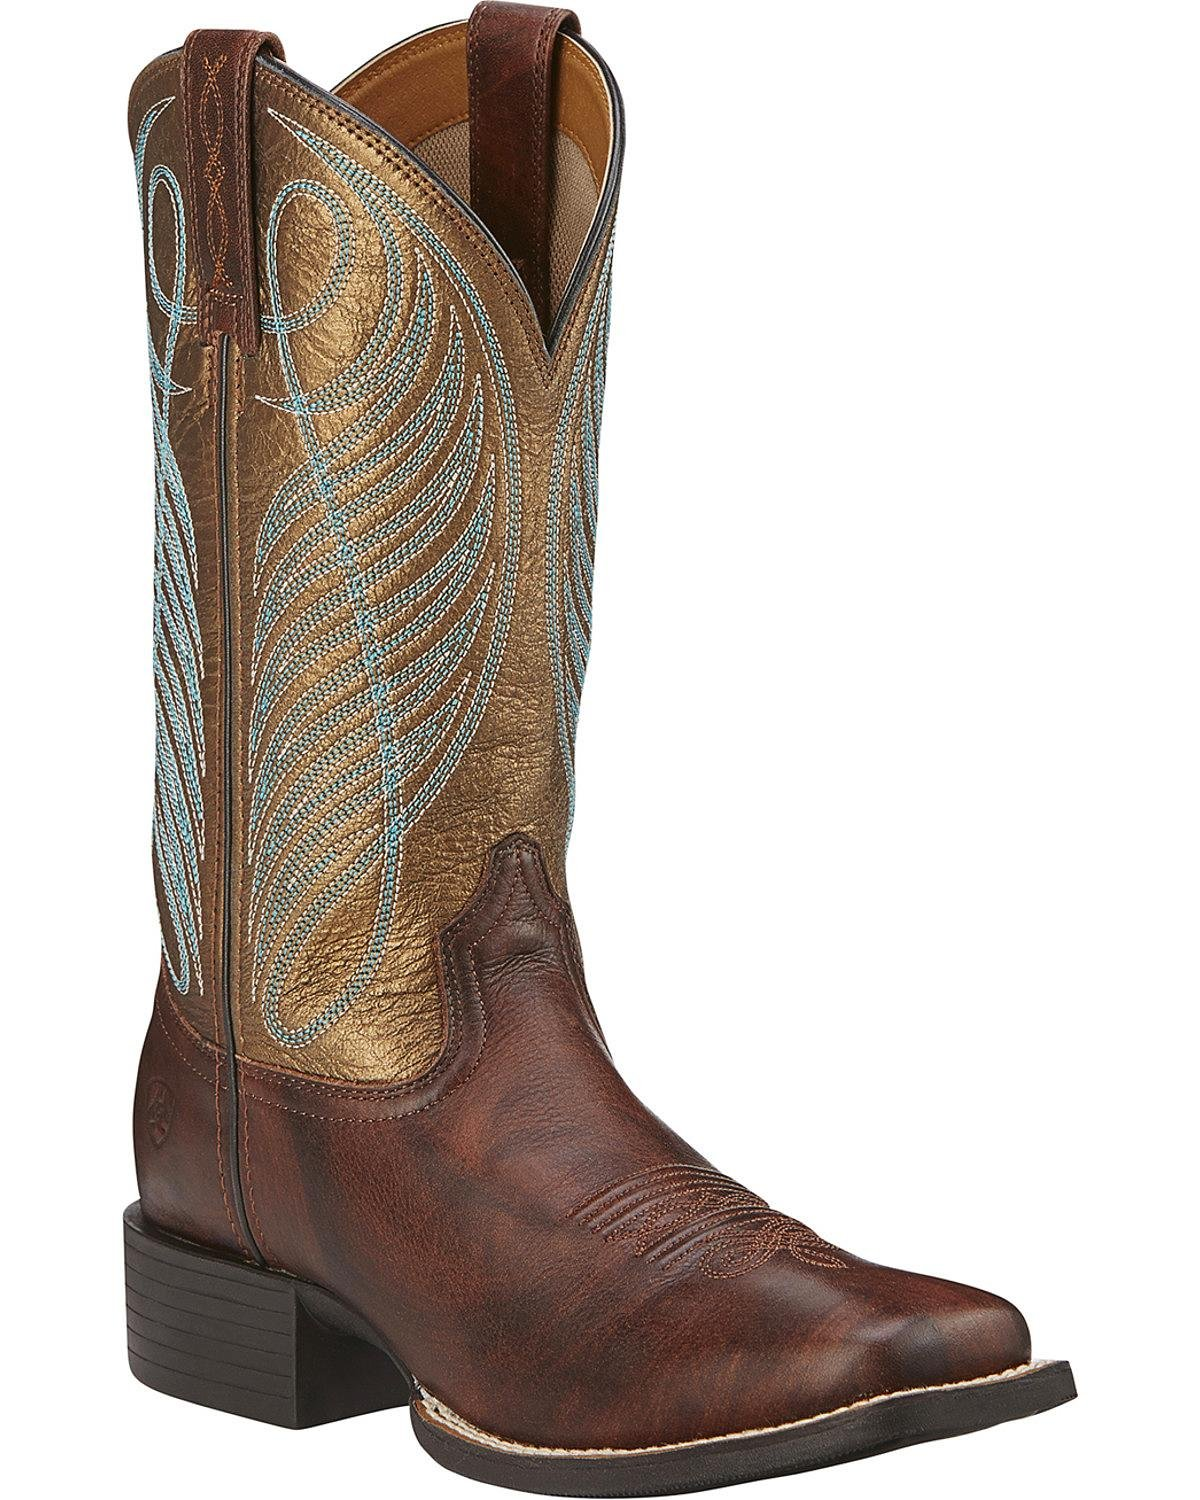 Ariat Women's Round up Wide Square Toe Western Cowboy Boot B00YFXYNRY 6 C/D US|Yukon Brown